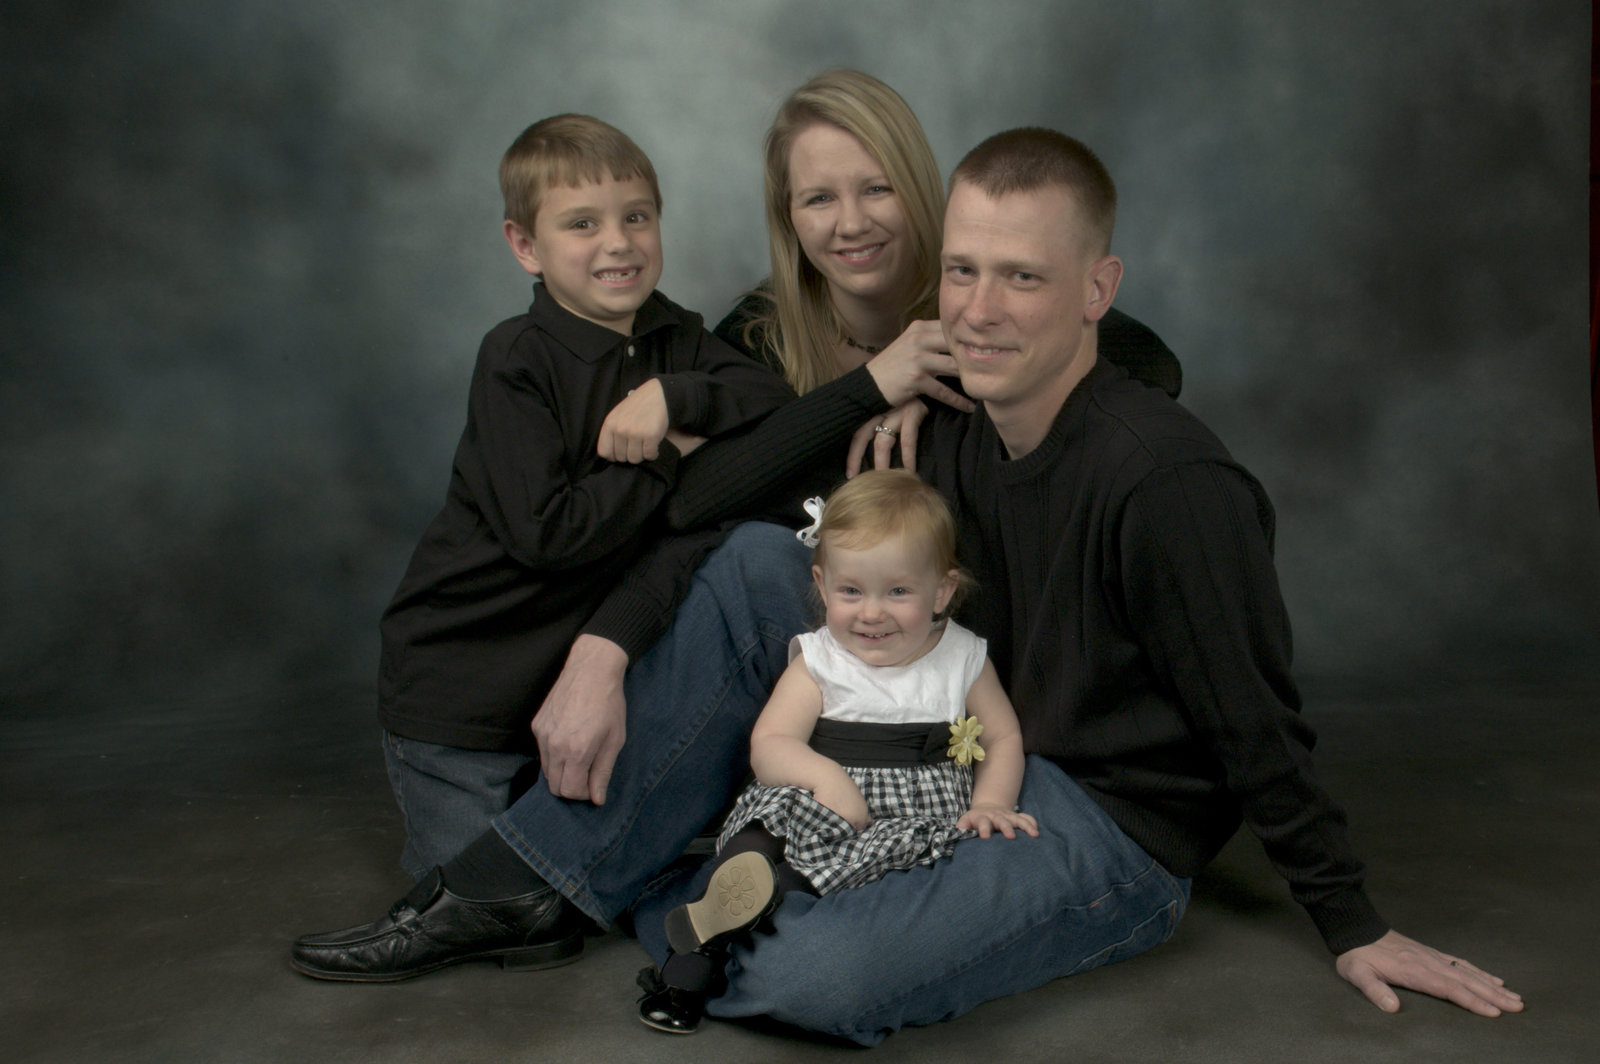 altizer_021008-9